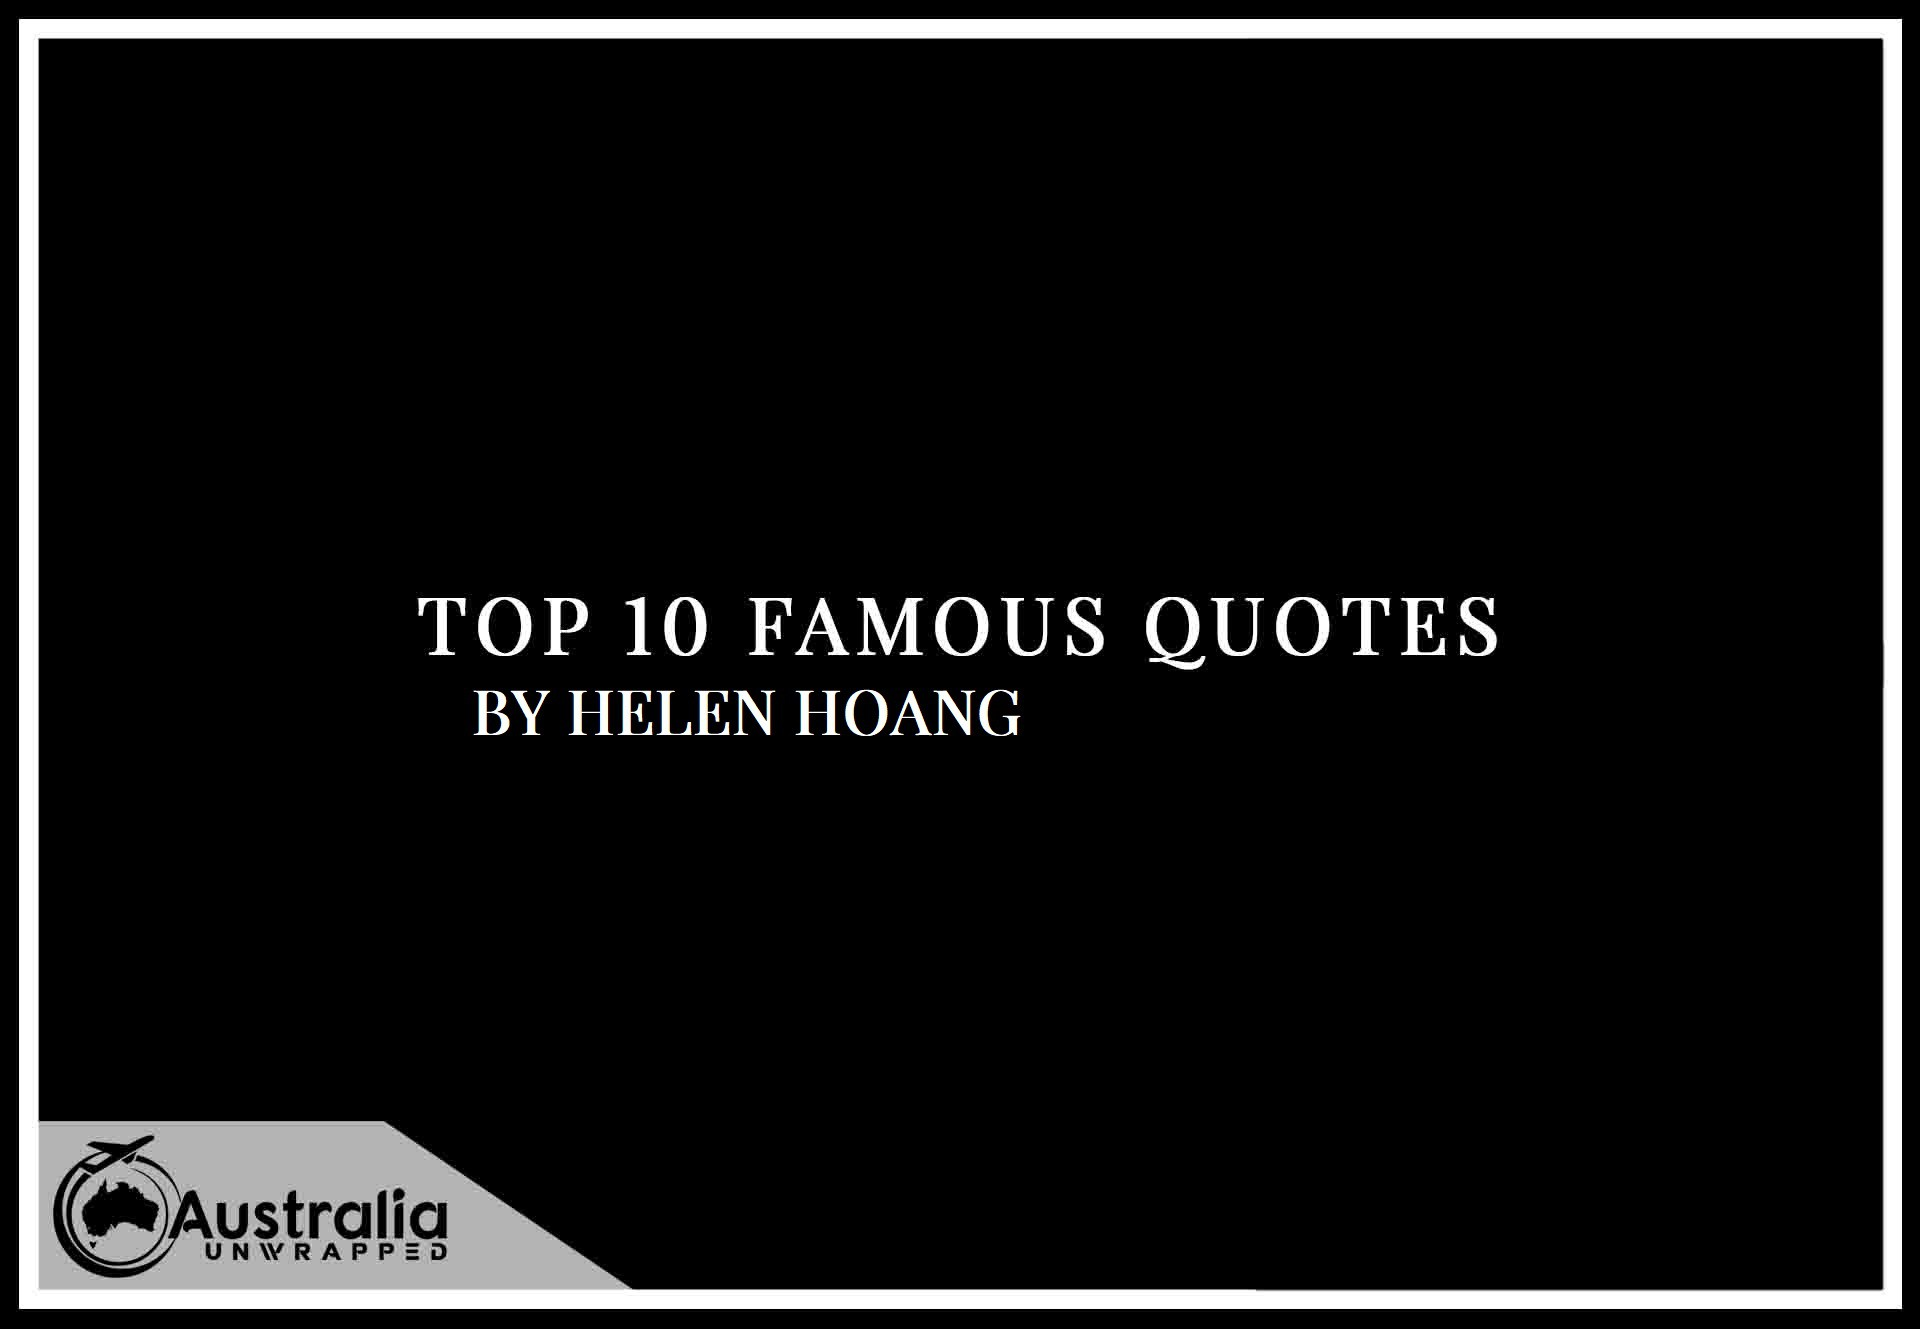 Top 10 Famous Quotes by Author Helen Hoang